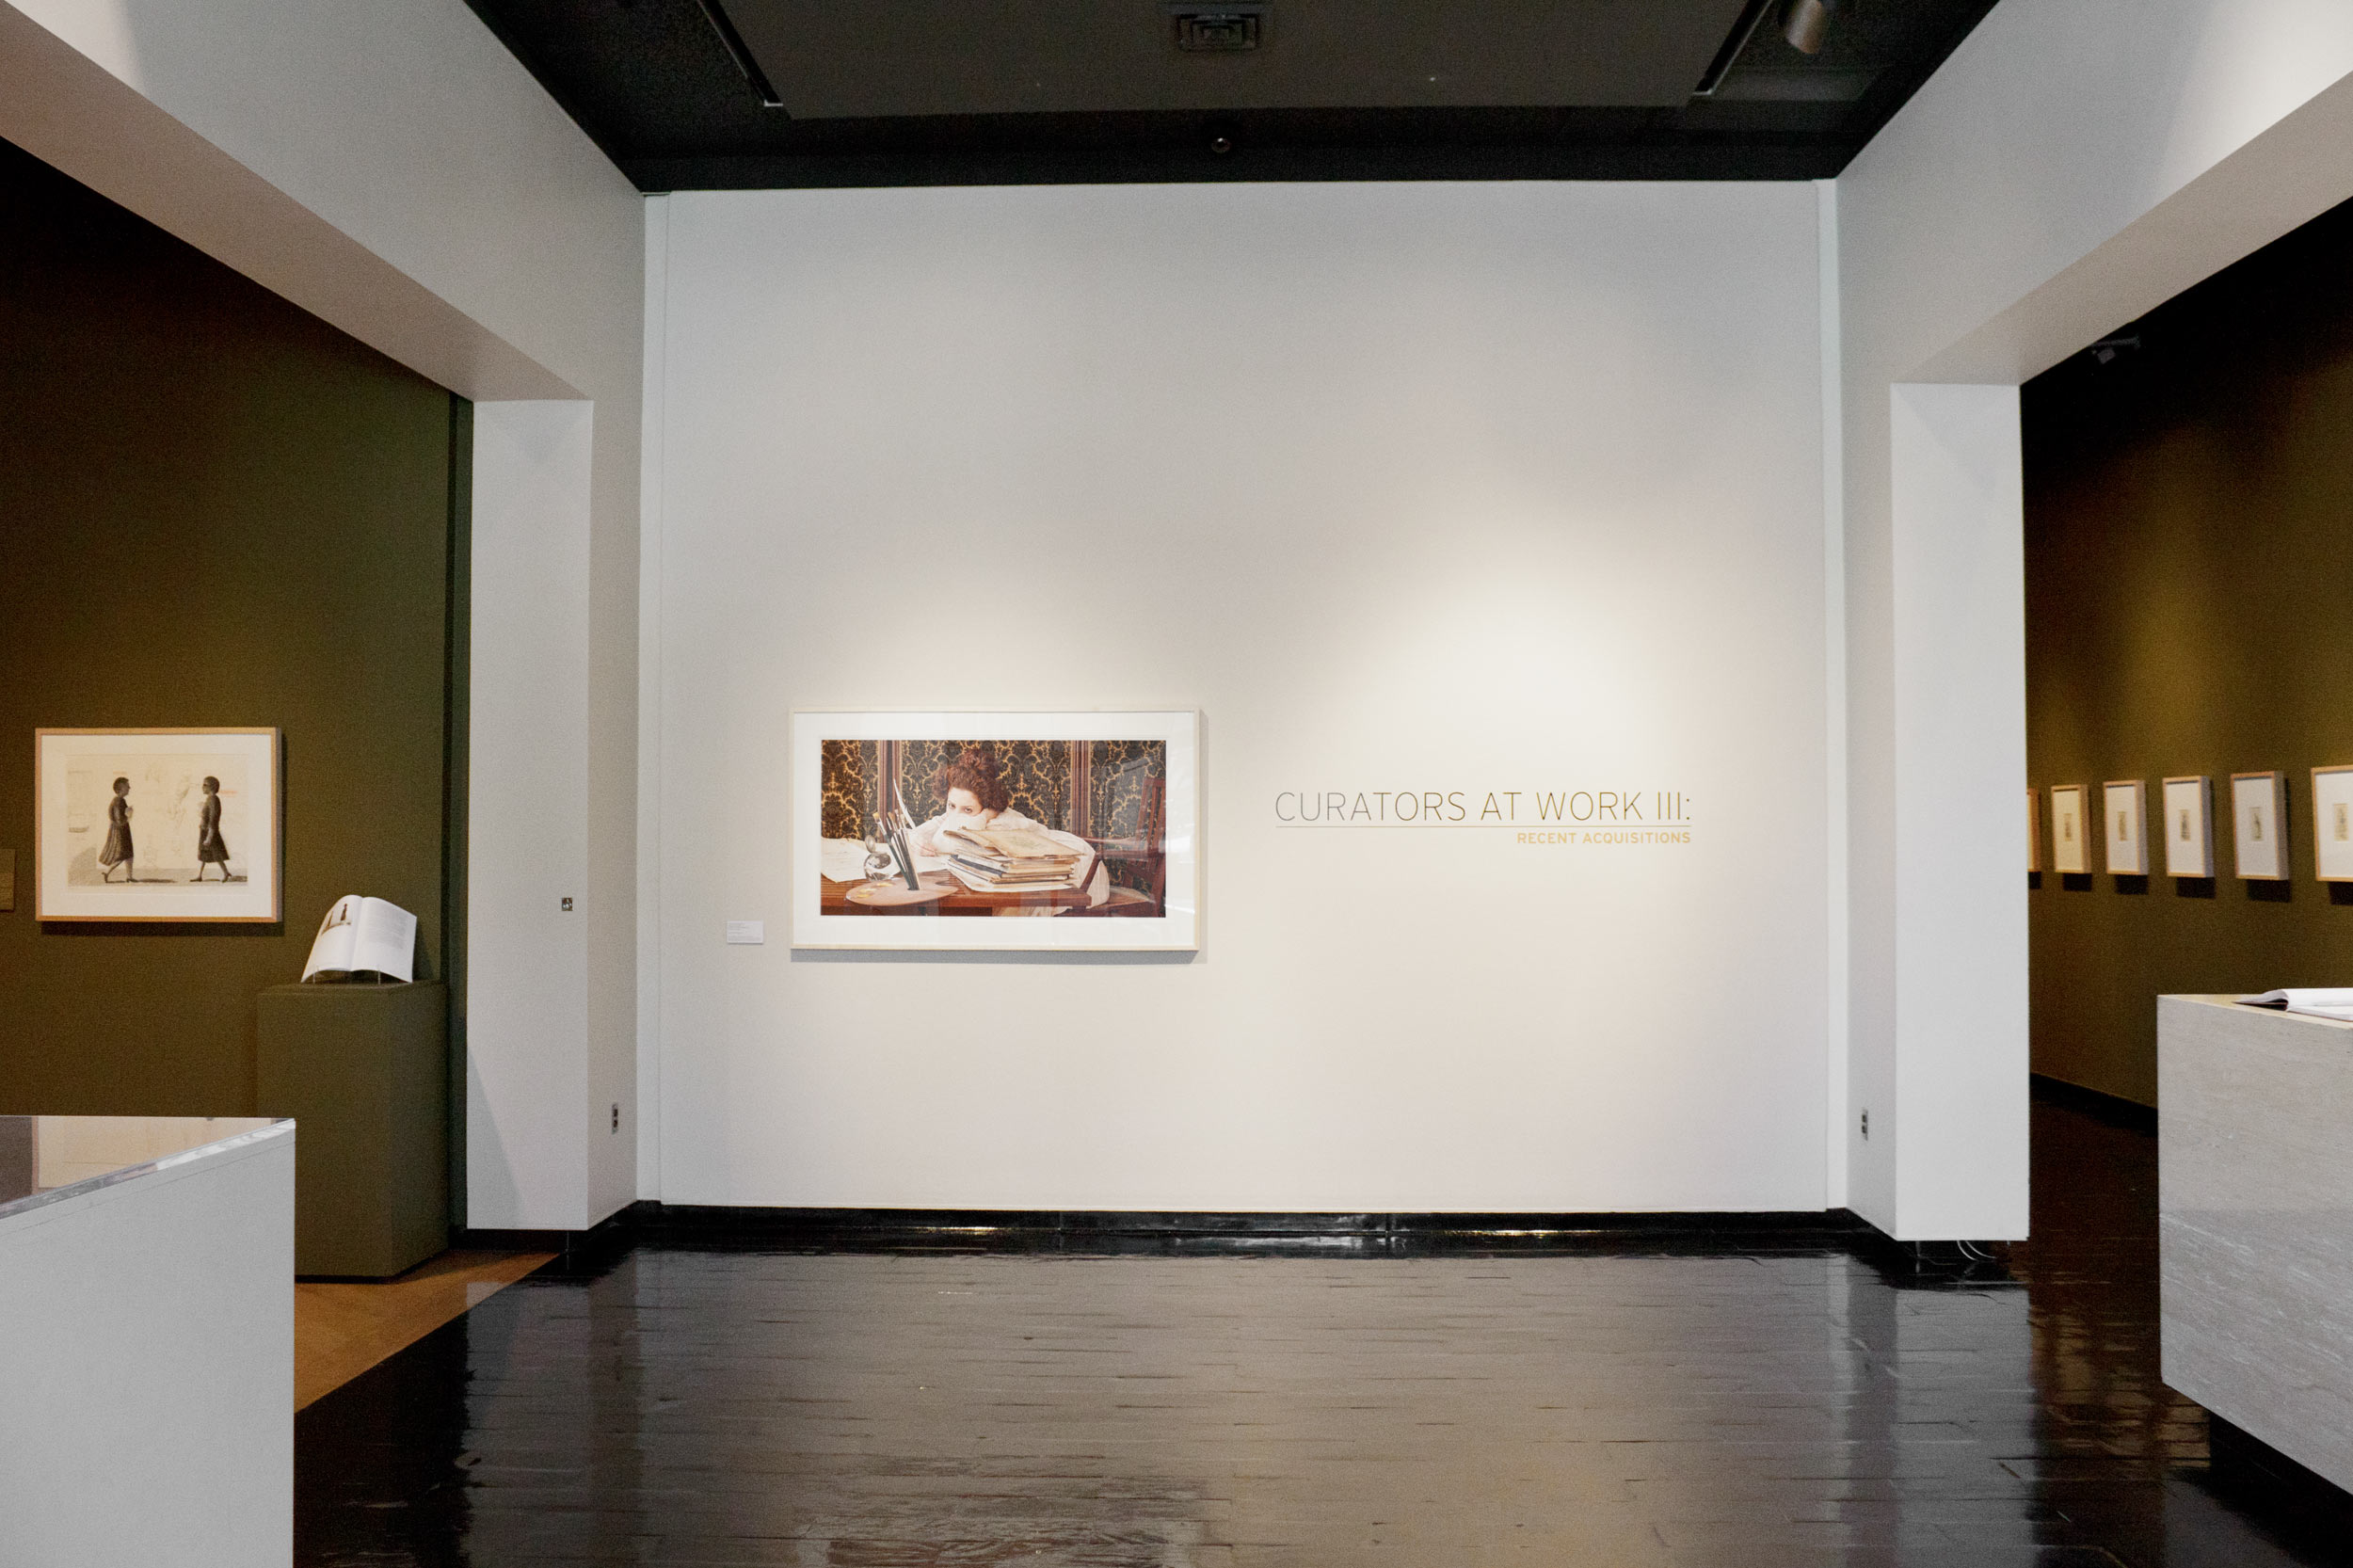 Tania & Lazlo's exhibithion at Muscarelle Museum of Art USAcurated by John T. Spike